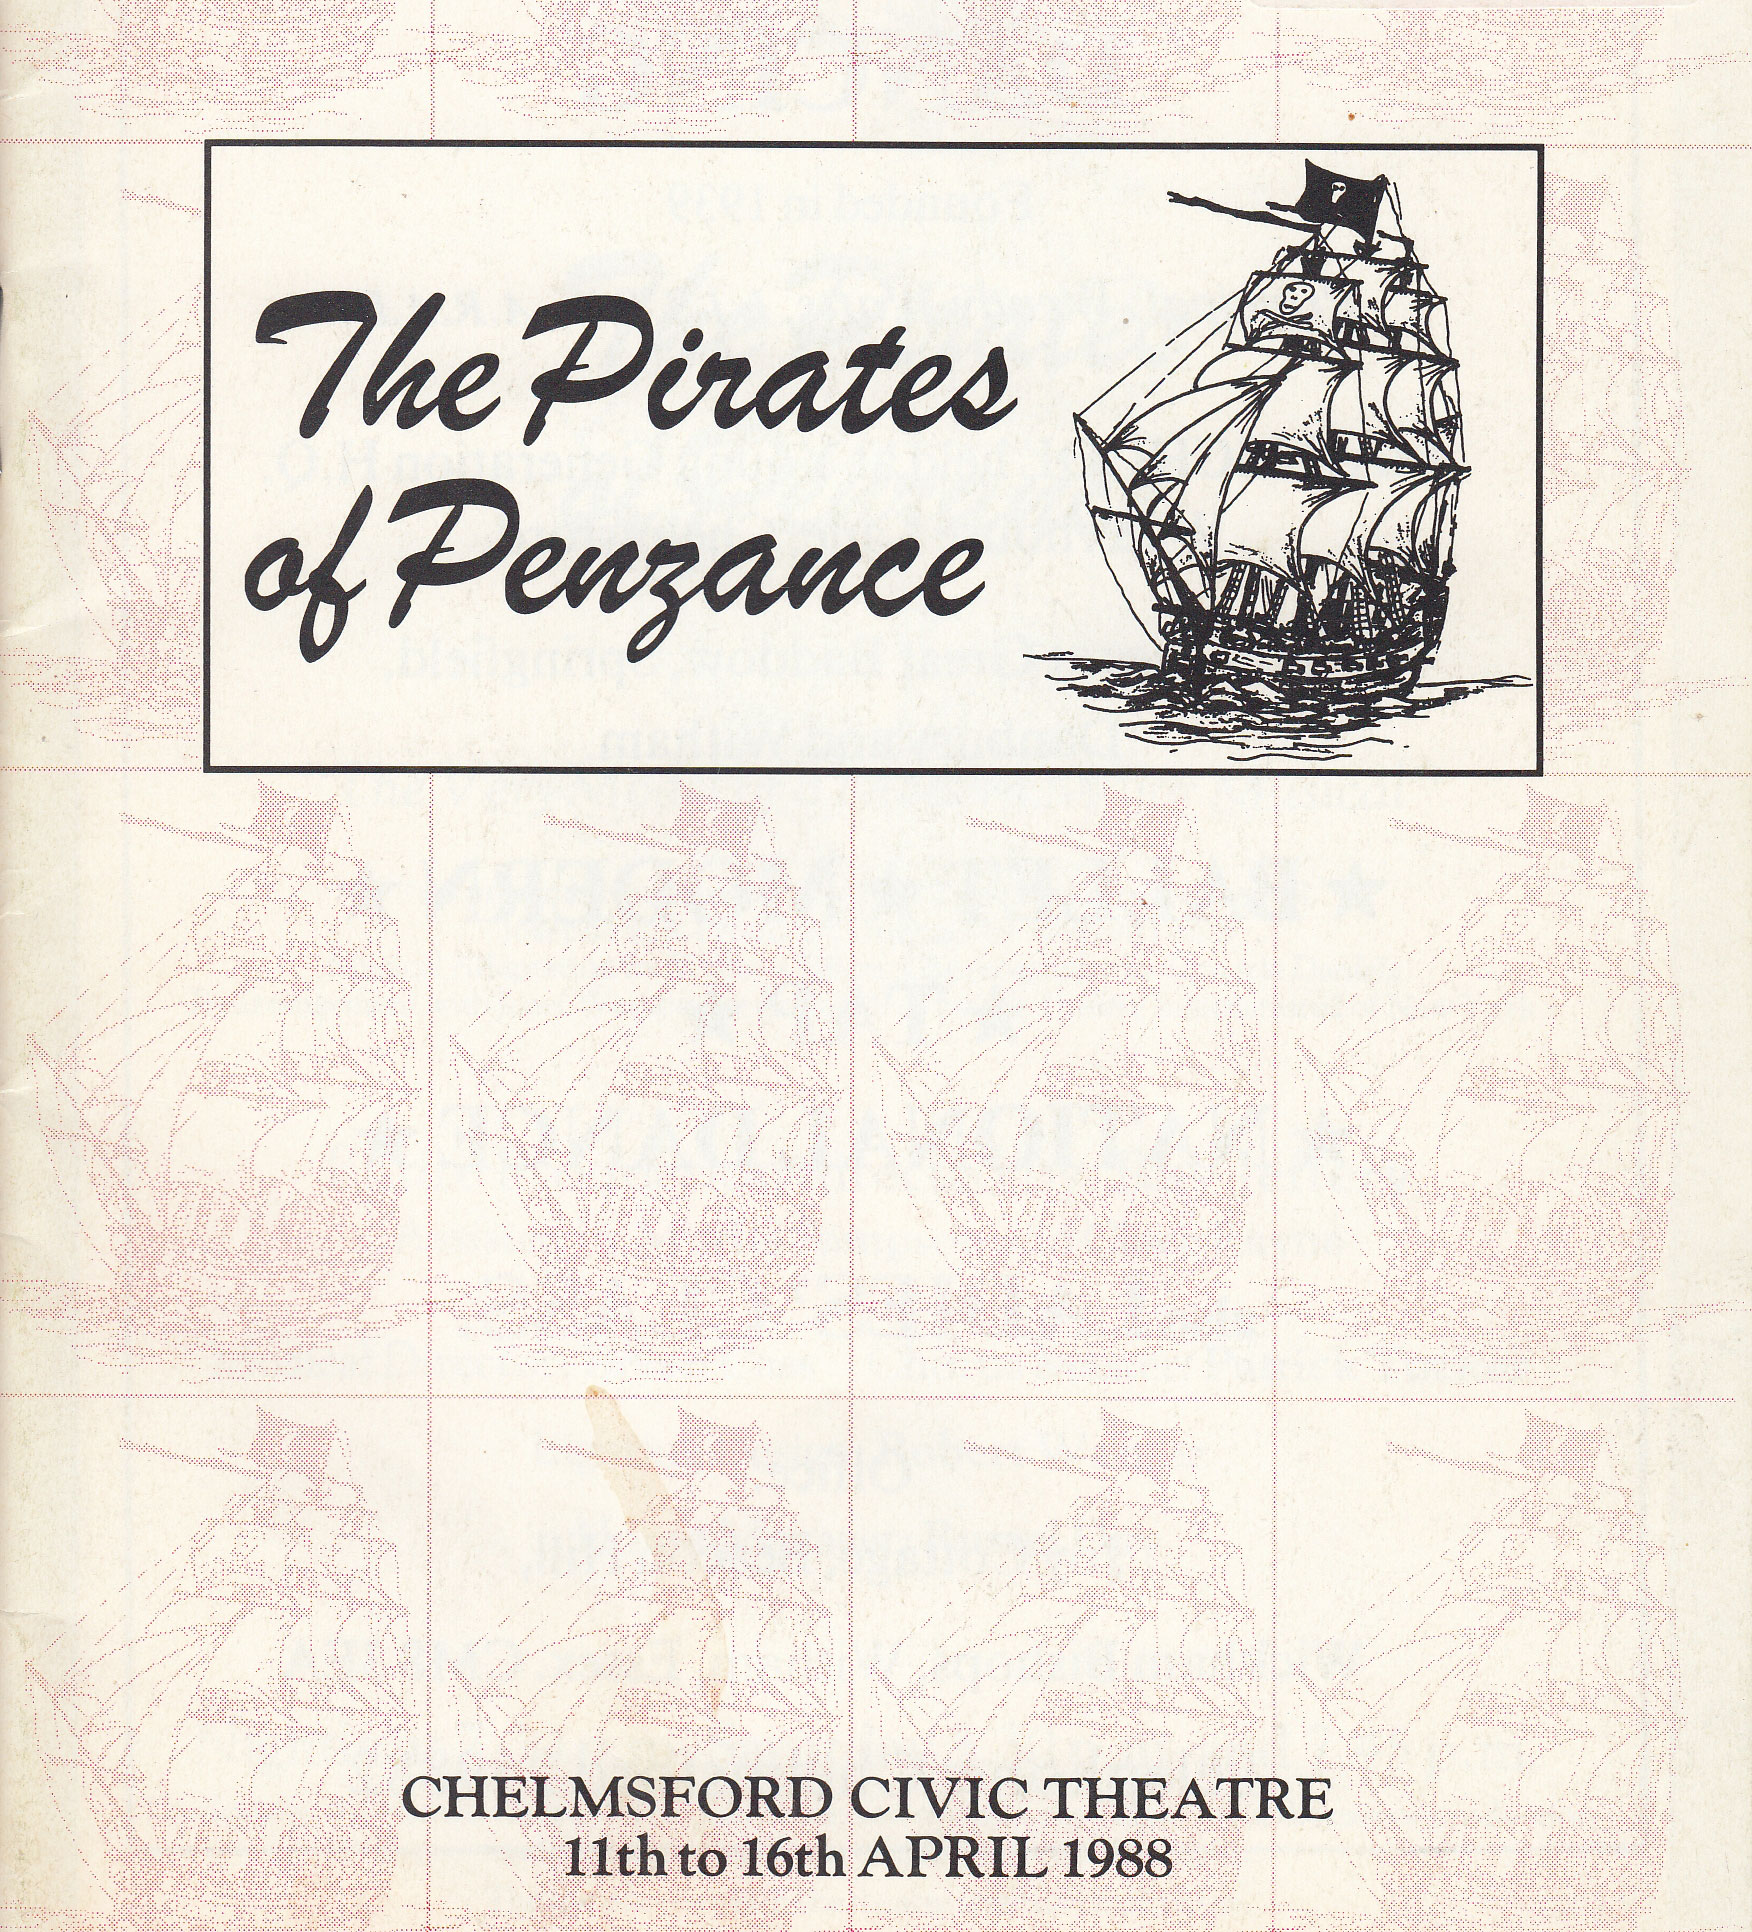 The Pirates of Penzance (1988)